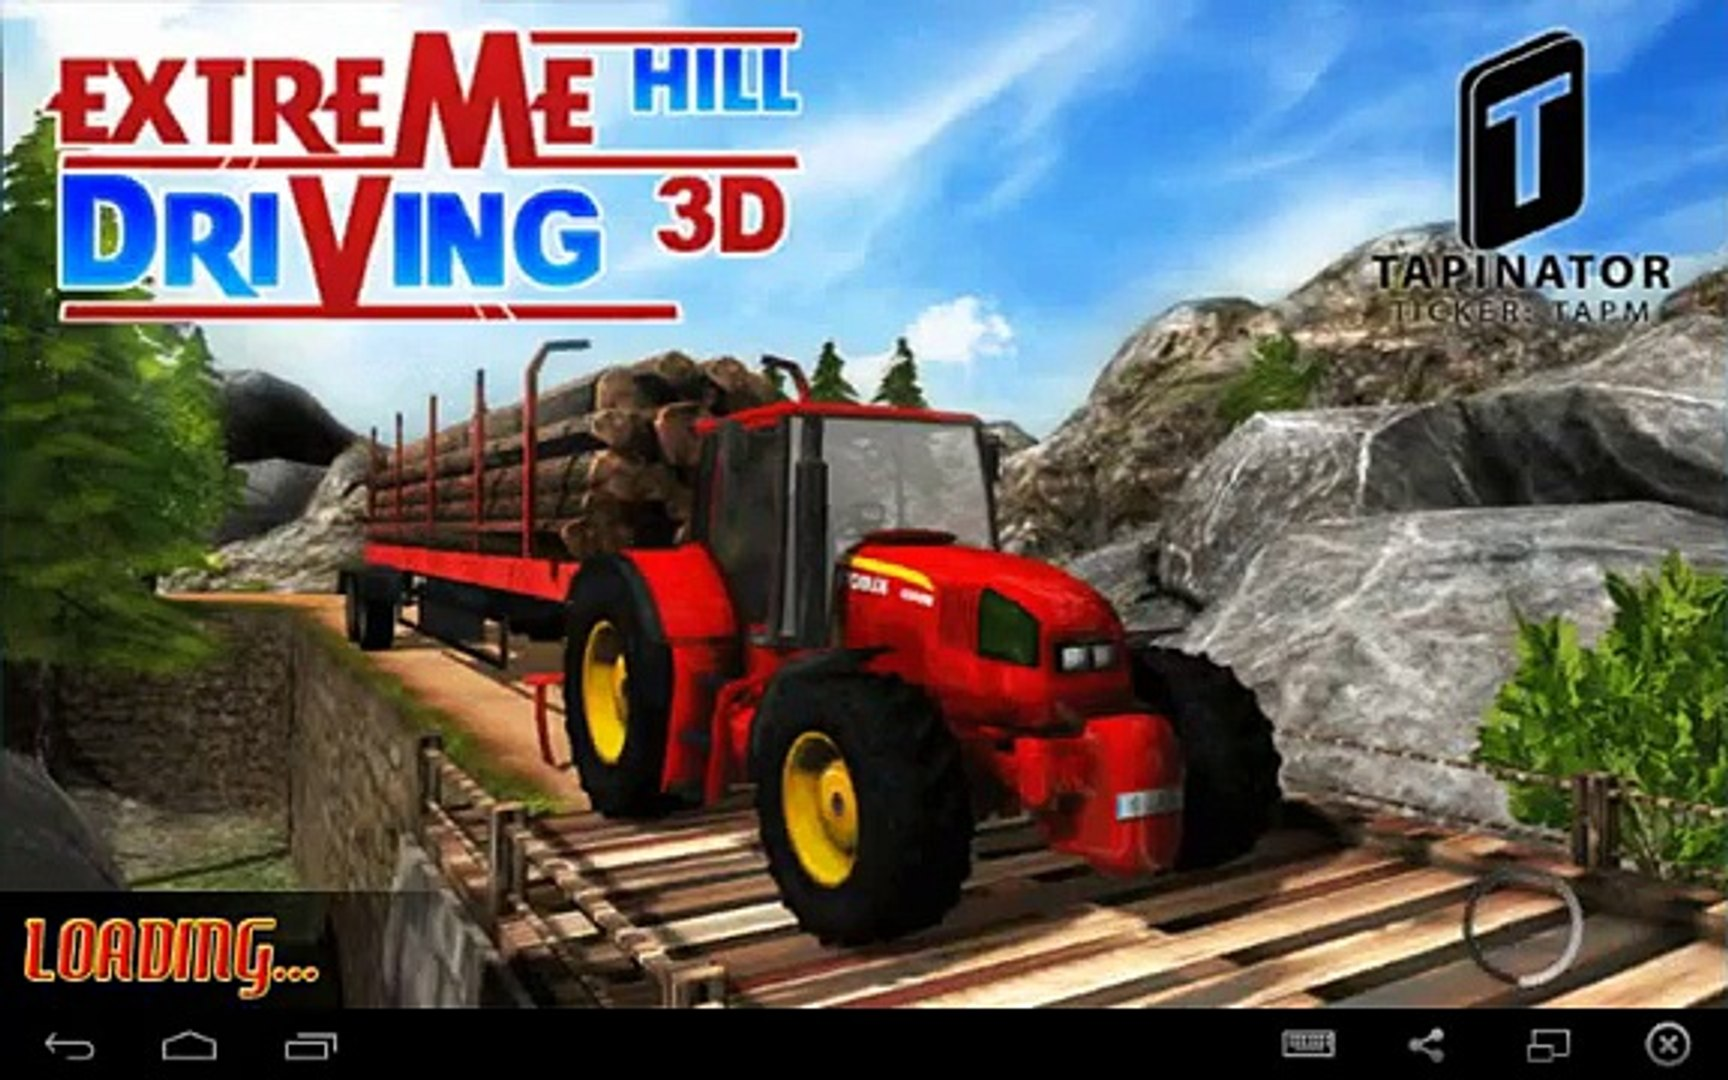 Extreme Hill Driving 3D for Android GamePlay